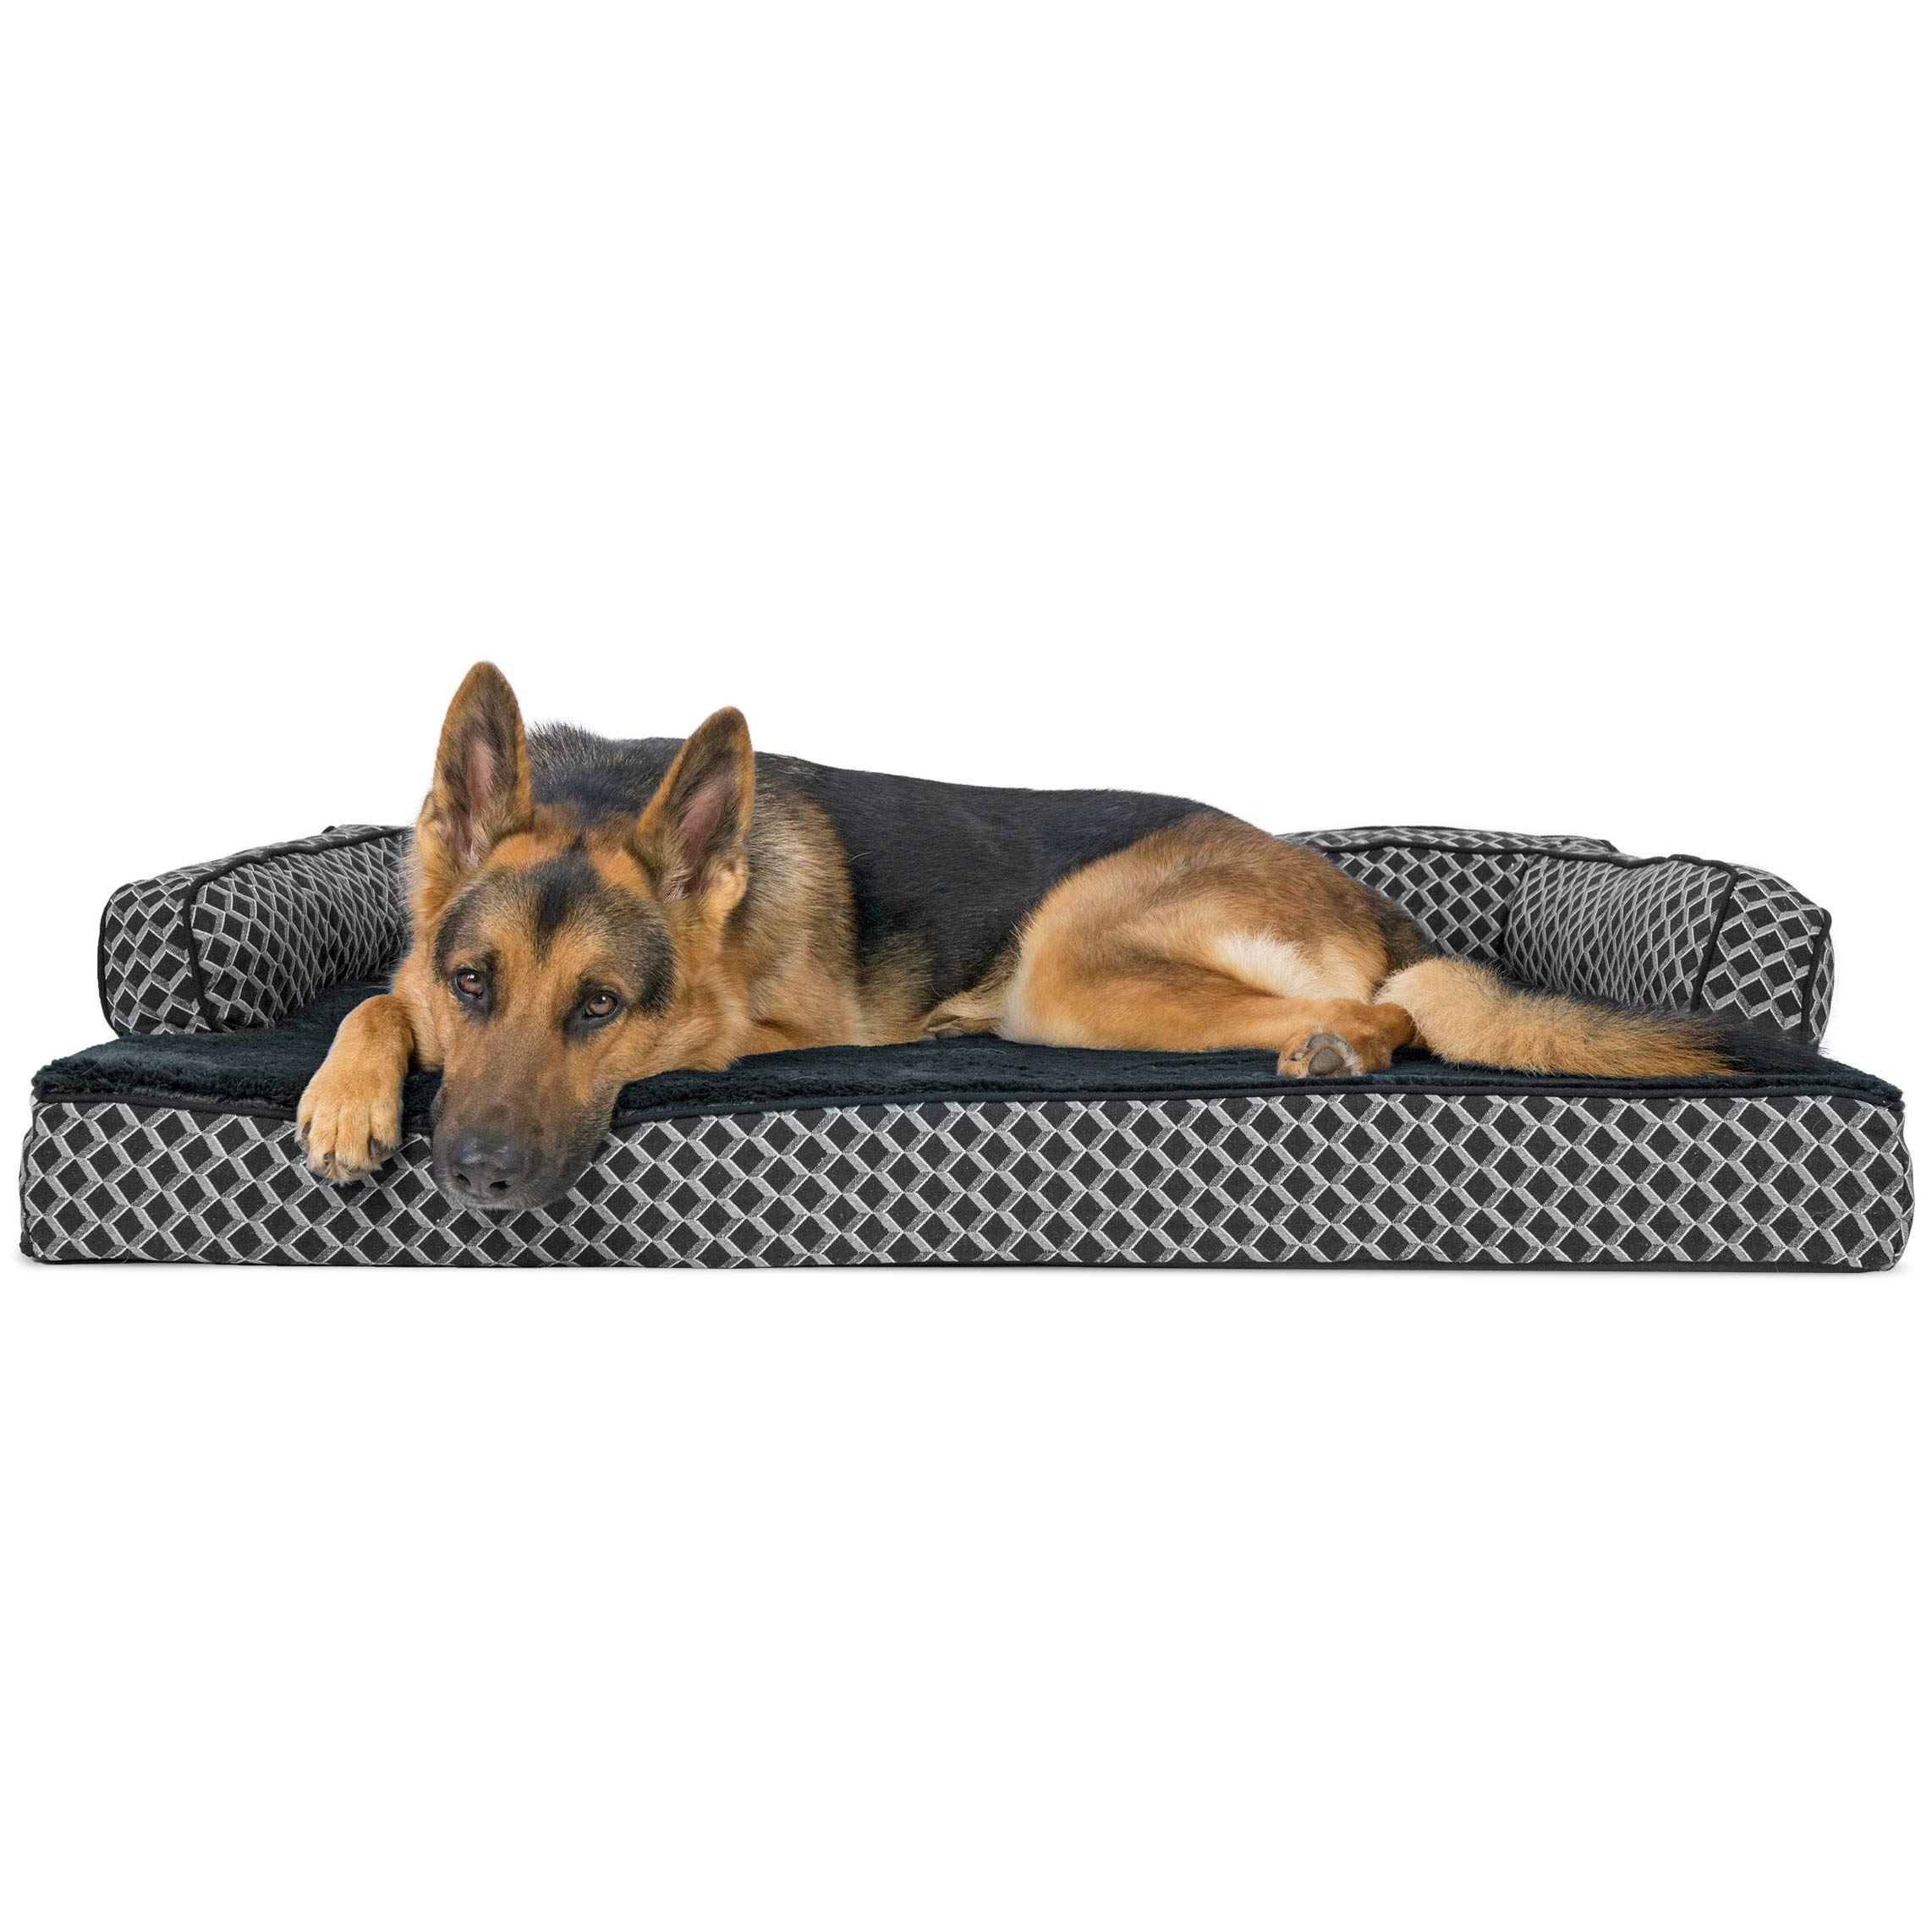 FurHaven Pet Dog Bed | Orthopedic Plush & Décor Comfy Couch Sofa-Style Pet Bed for Dogs & Cats, Diamond Gray, Jumbo by Furhaven Pet (Image #1)